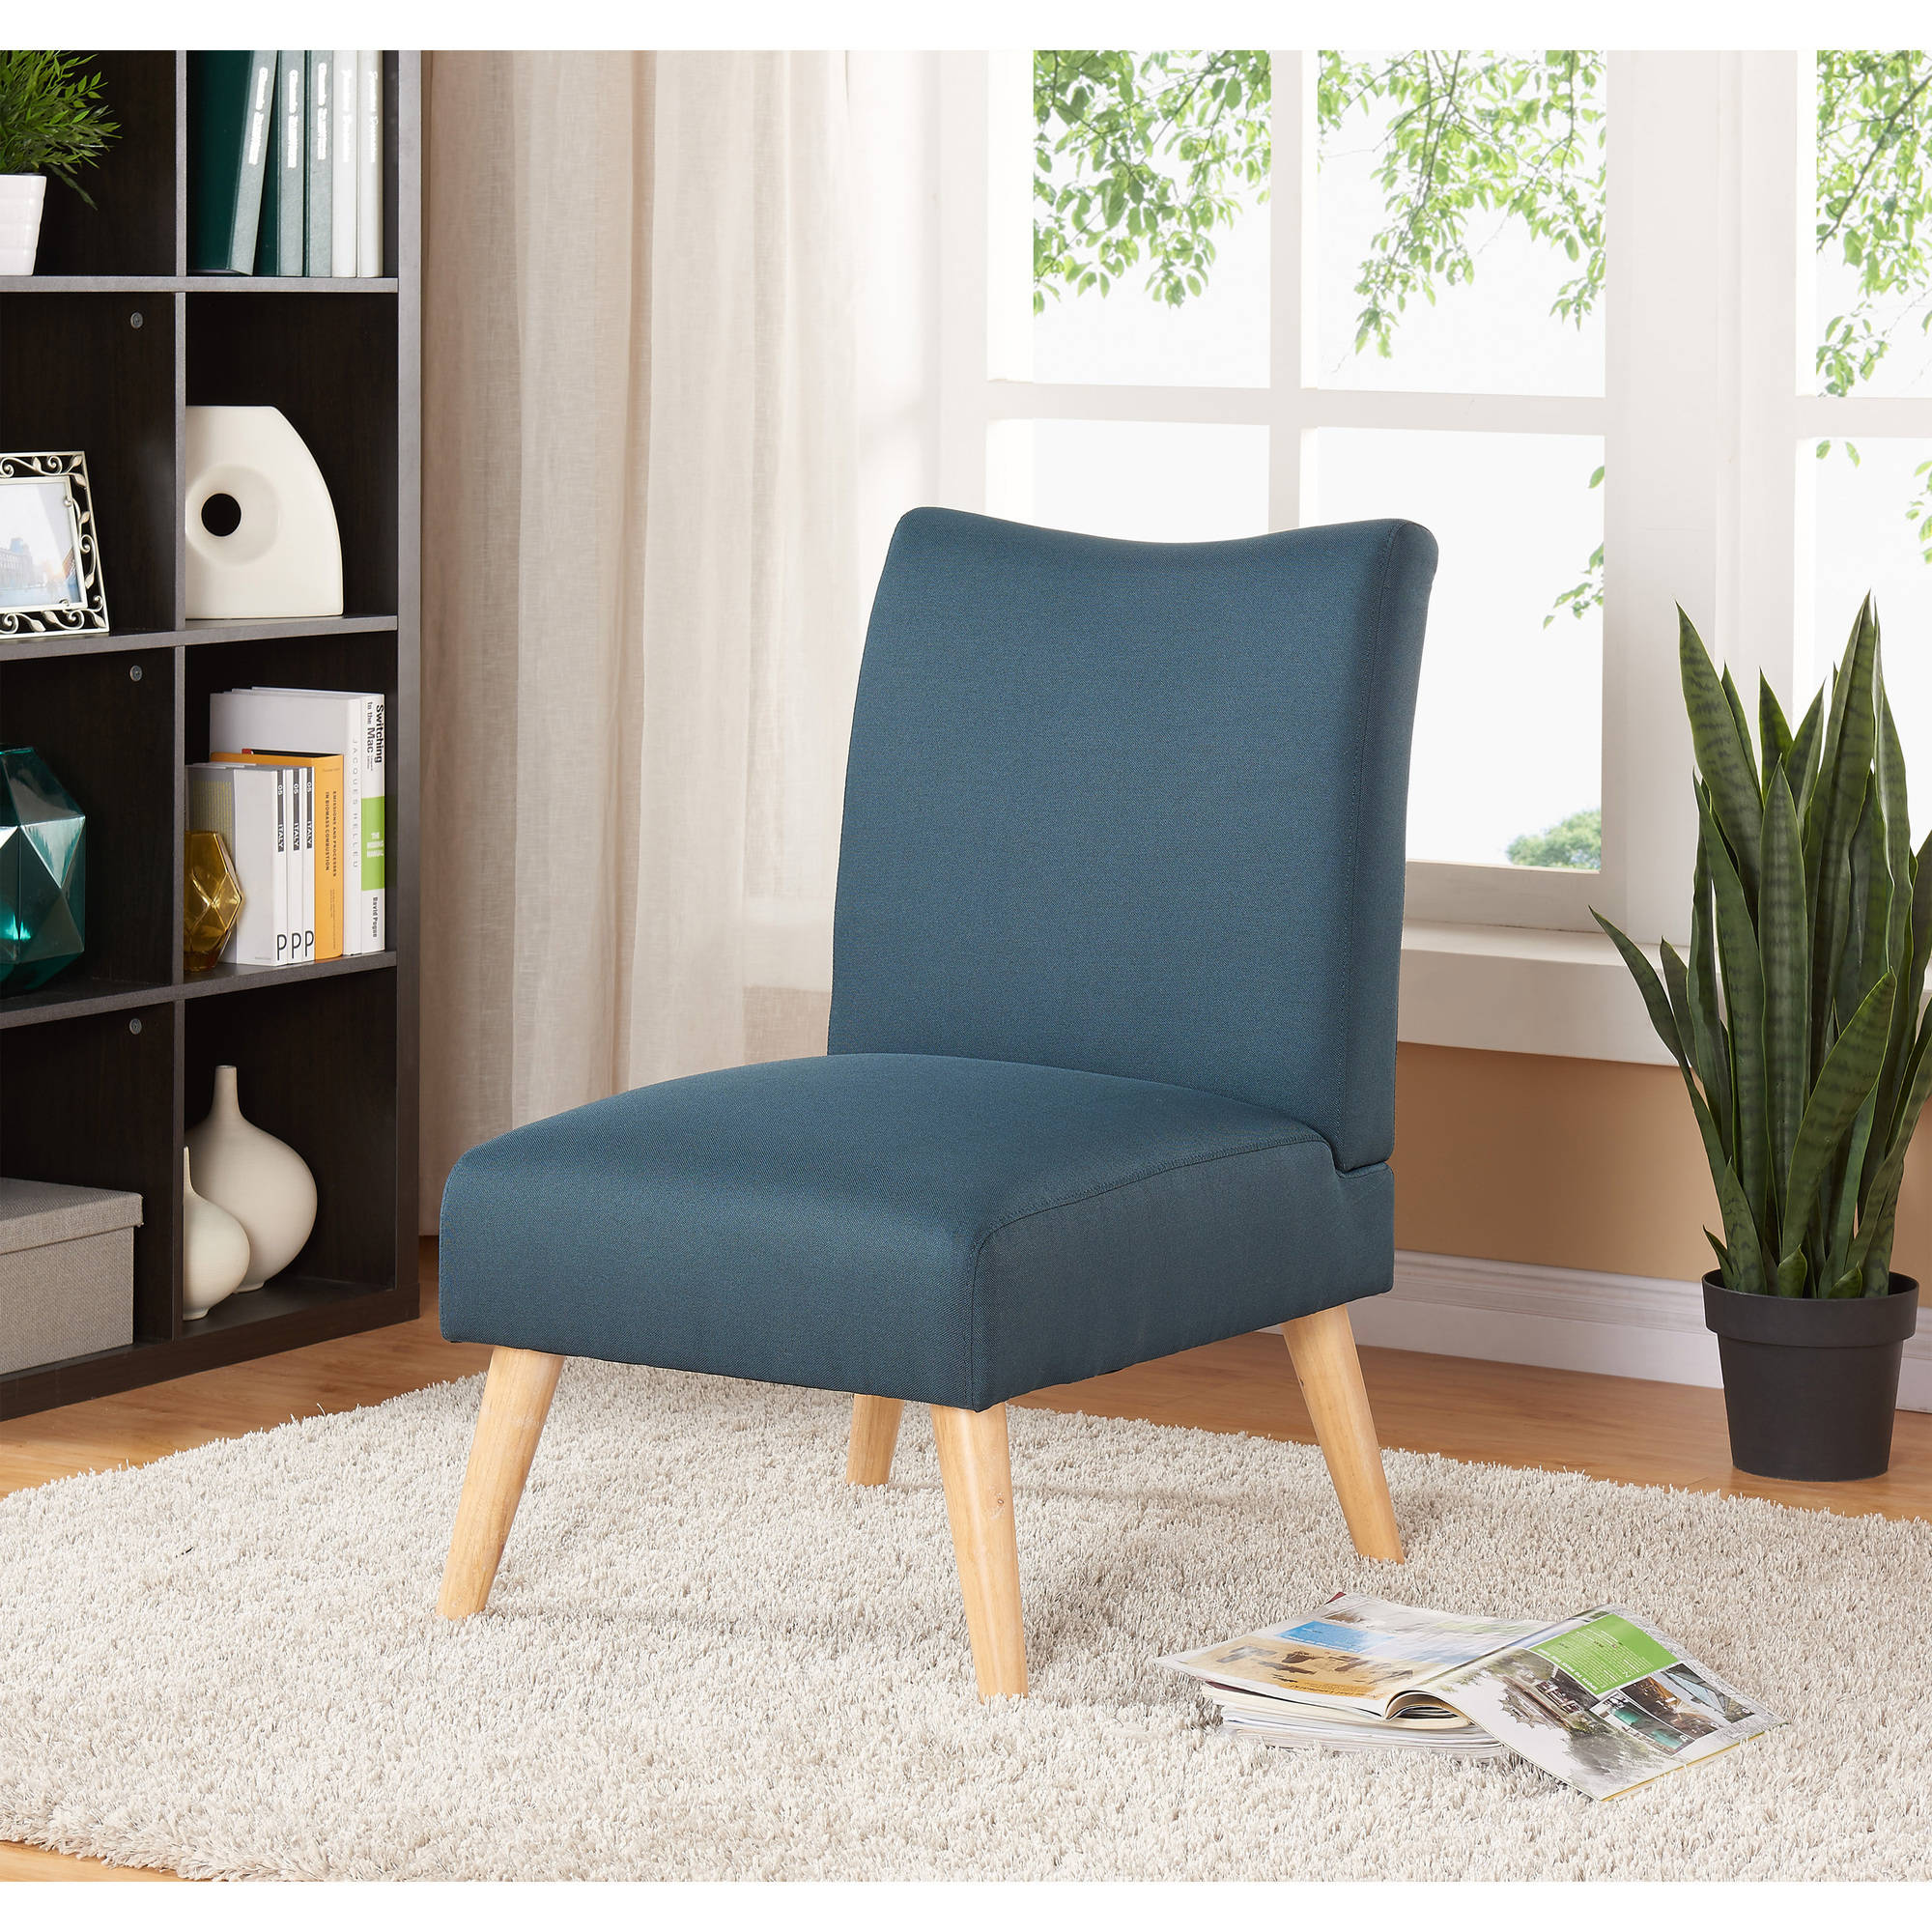 Beau Mainstays Solid Armless Slipper Chair, Multiple Colors